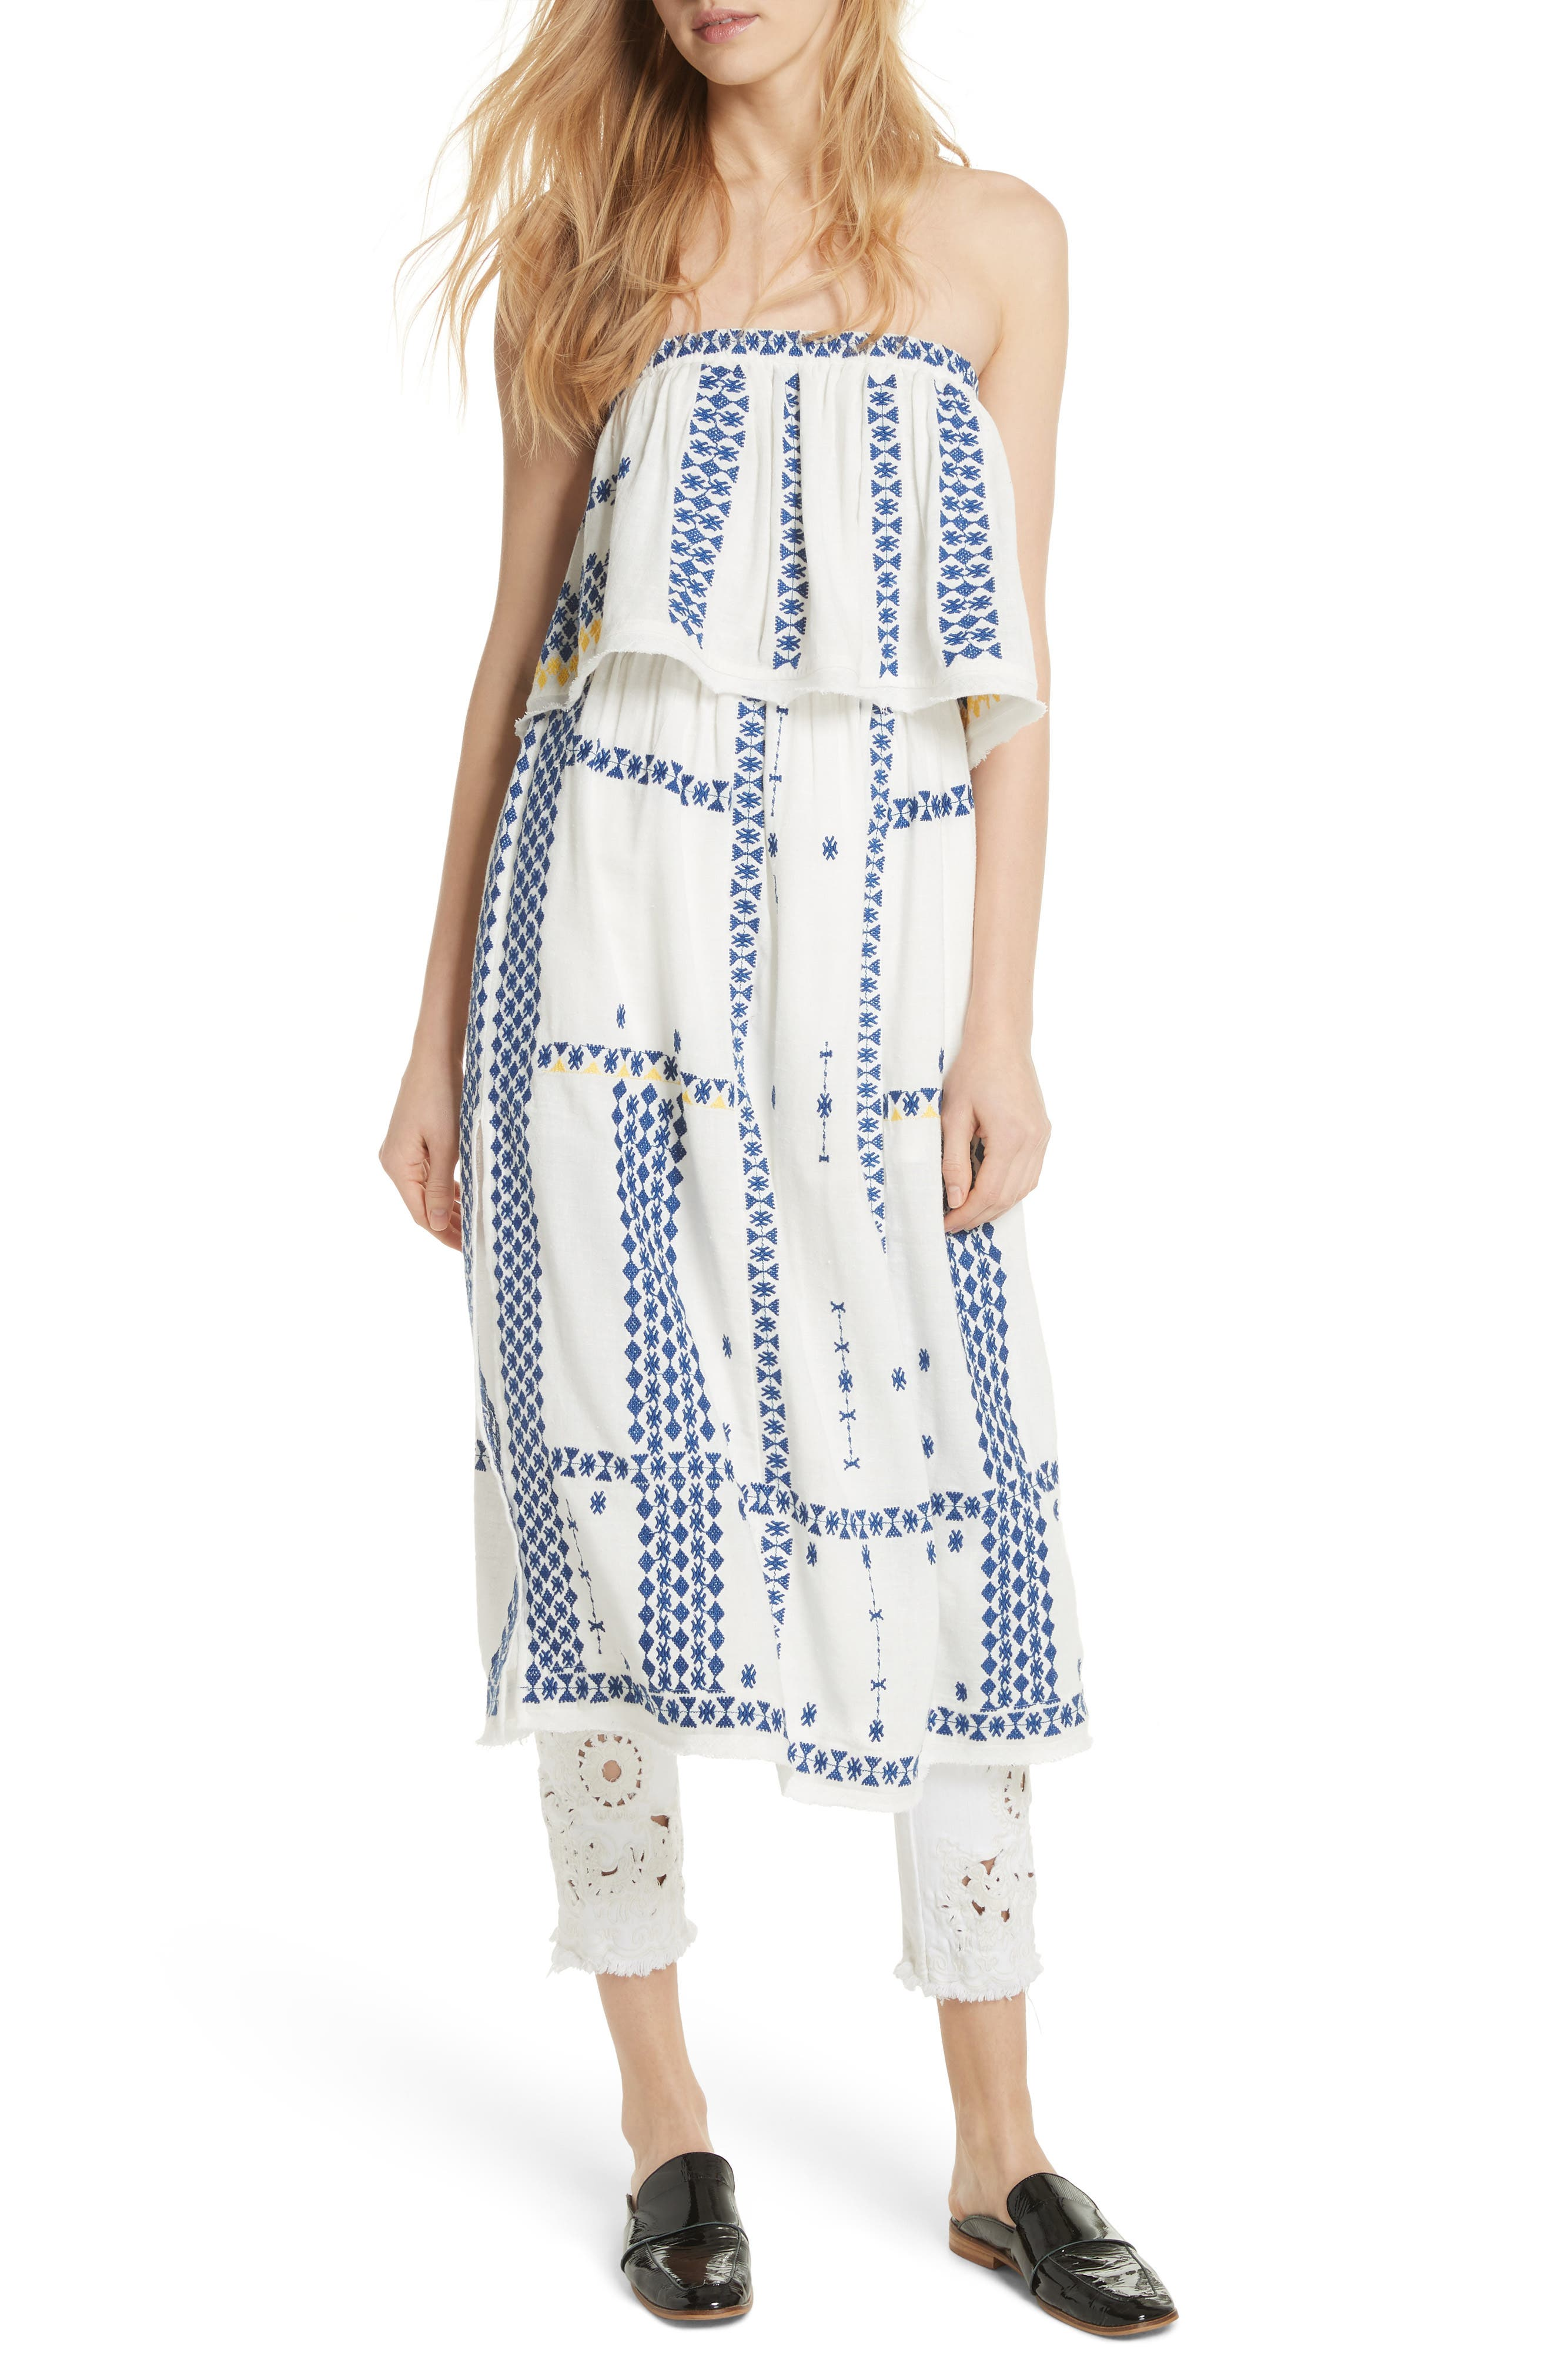 Wild Romance Embroidered Dress,                         Main,                         color, Ivory